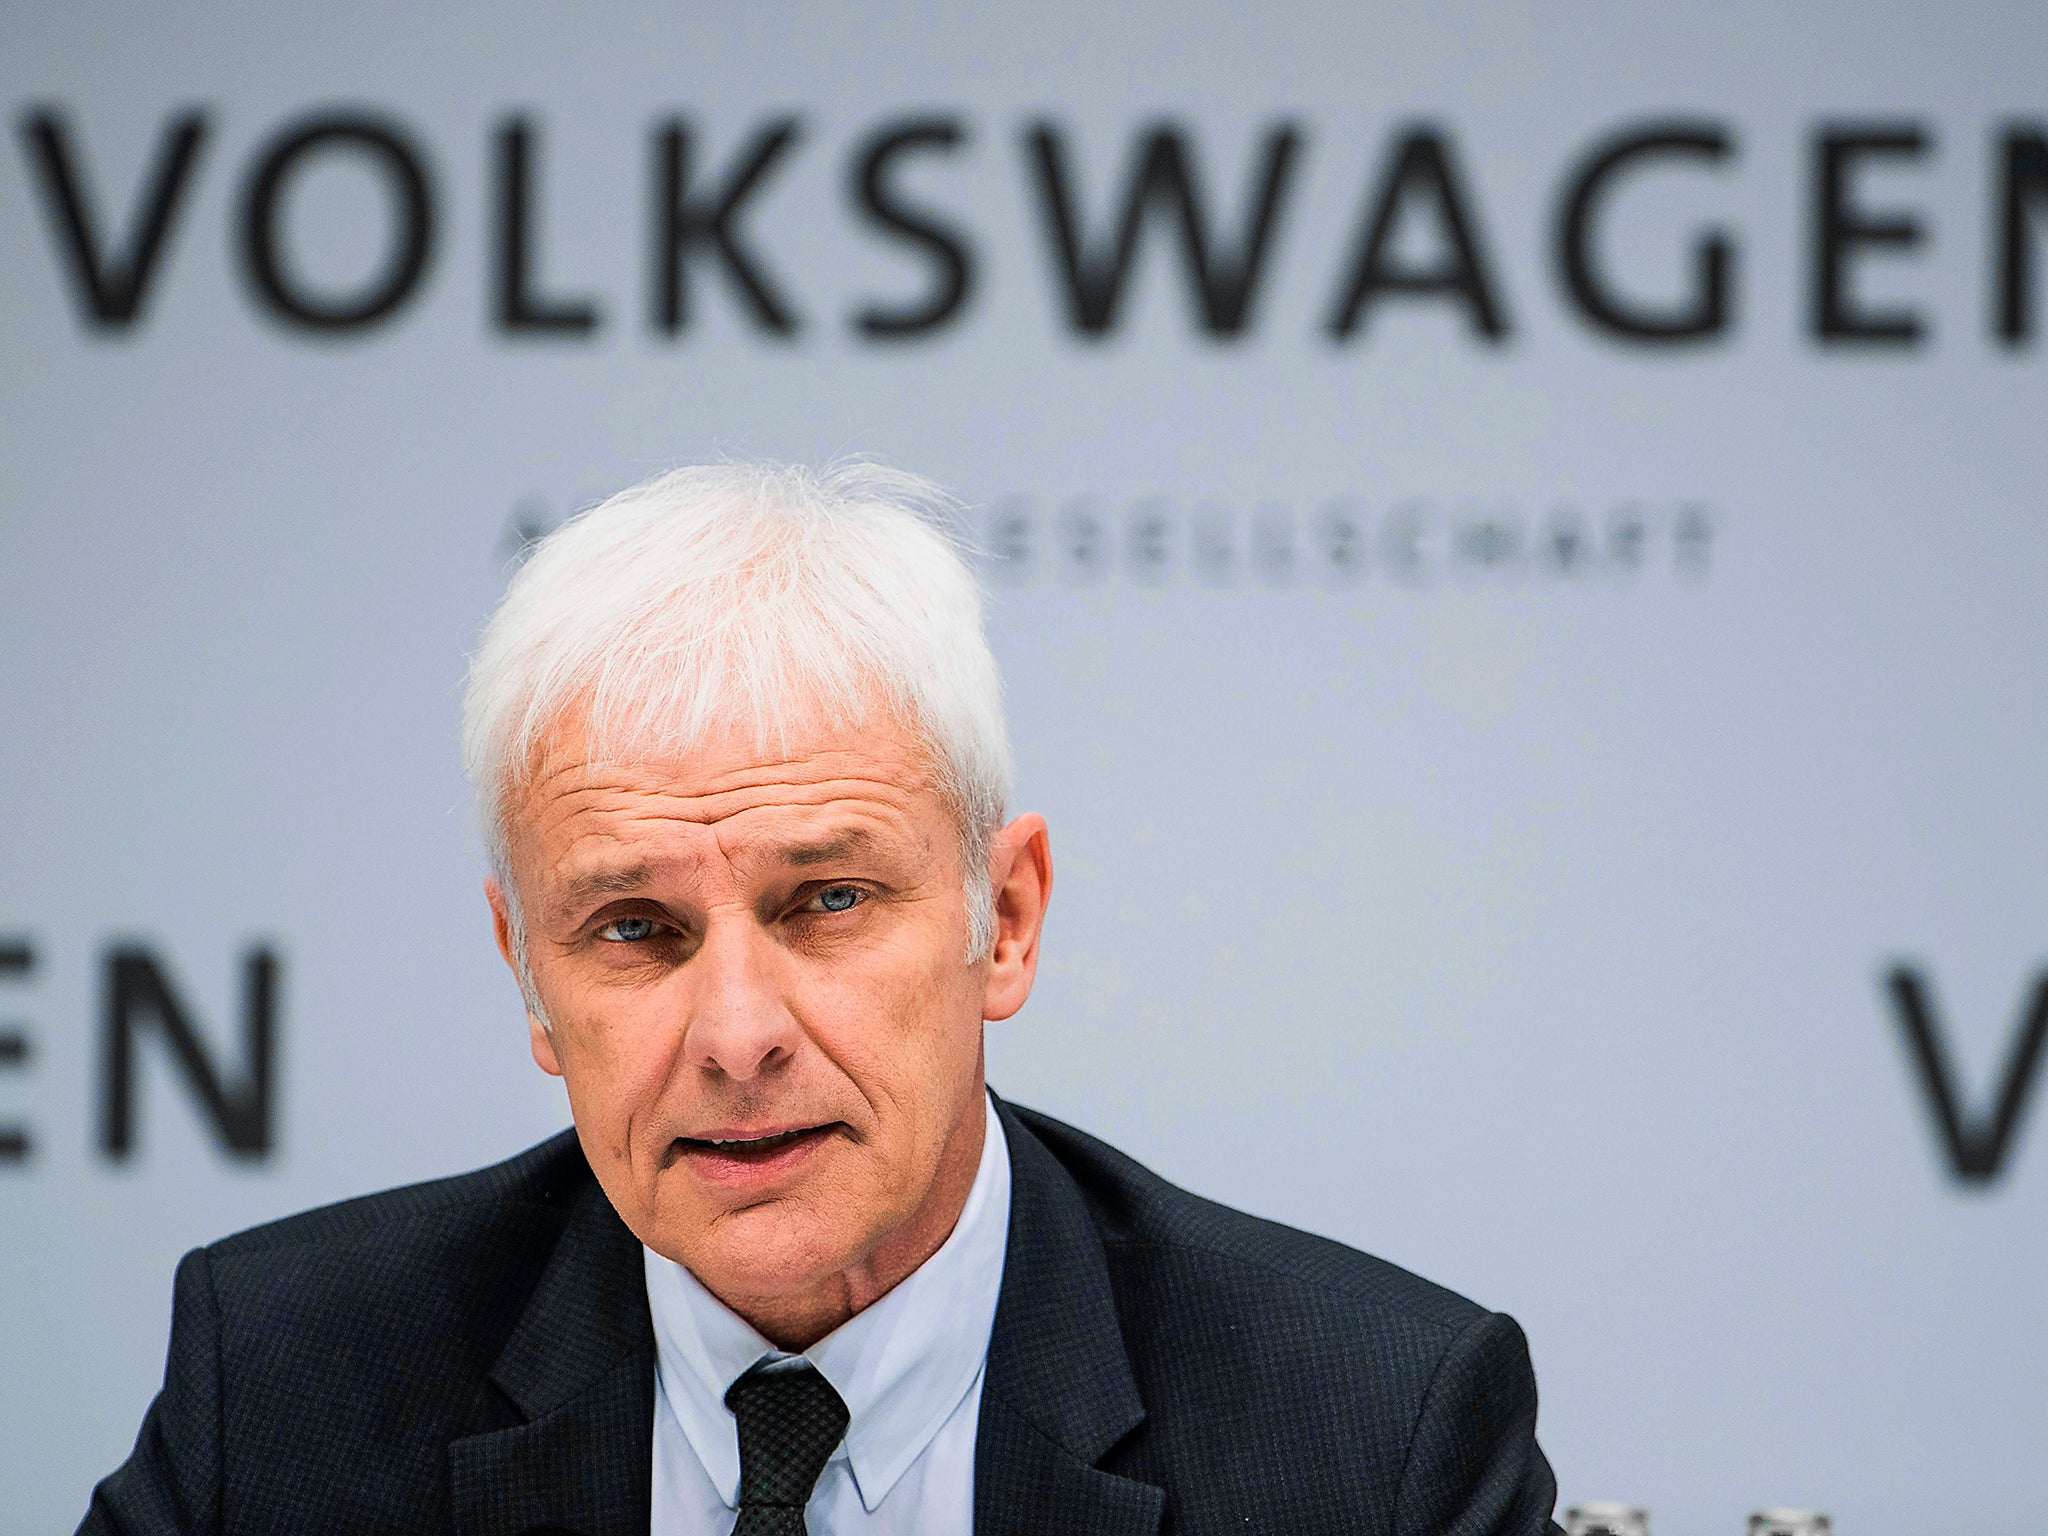 Volkswagen\'s boss receives 40% pay rise, despite fallout from emissions cheating scandal